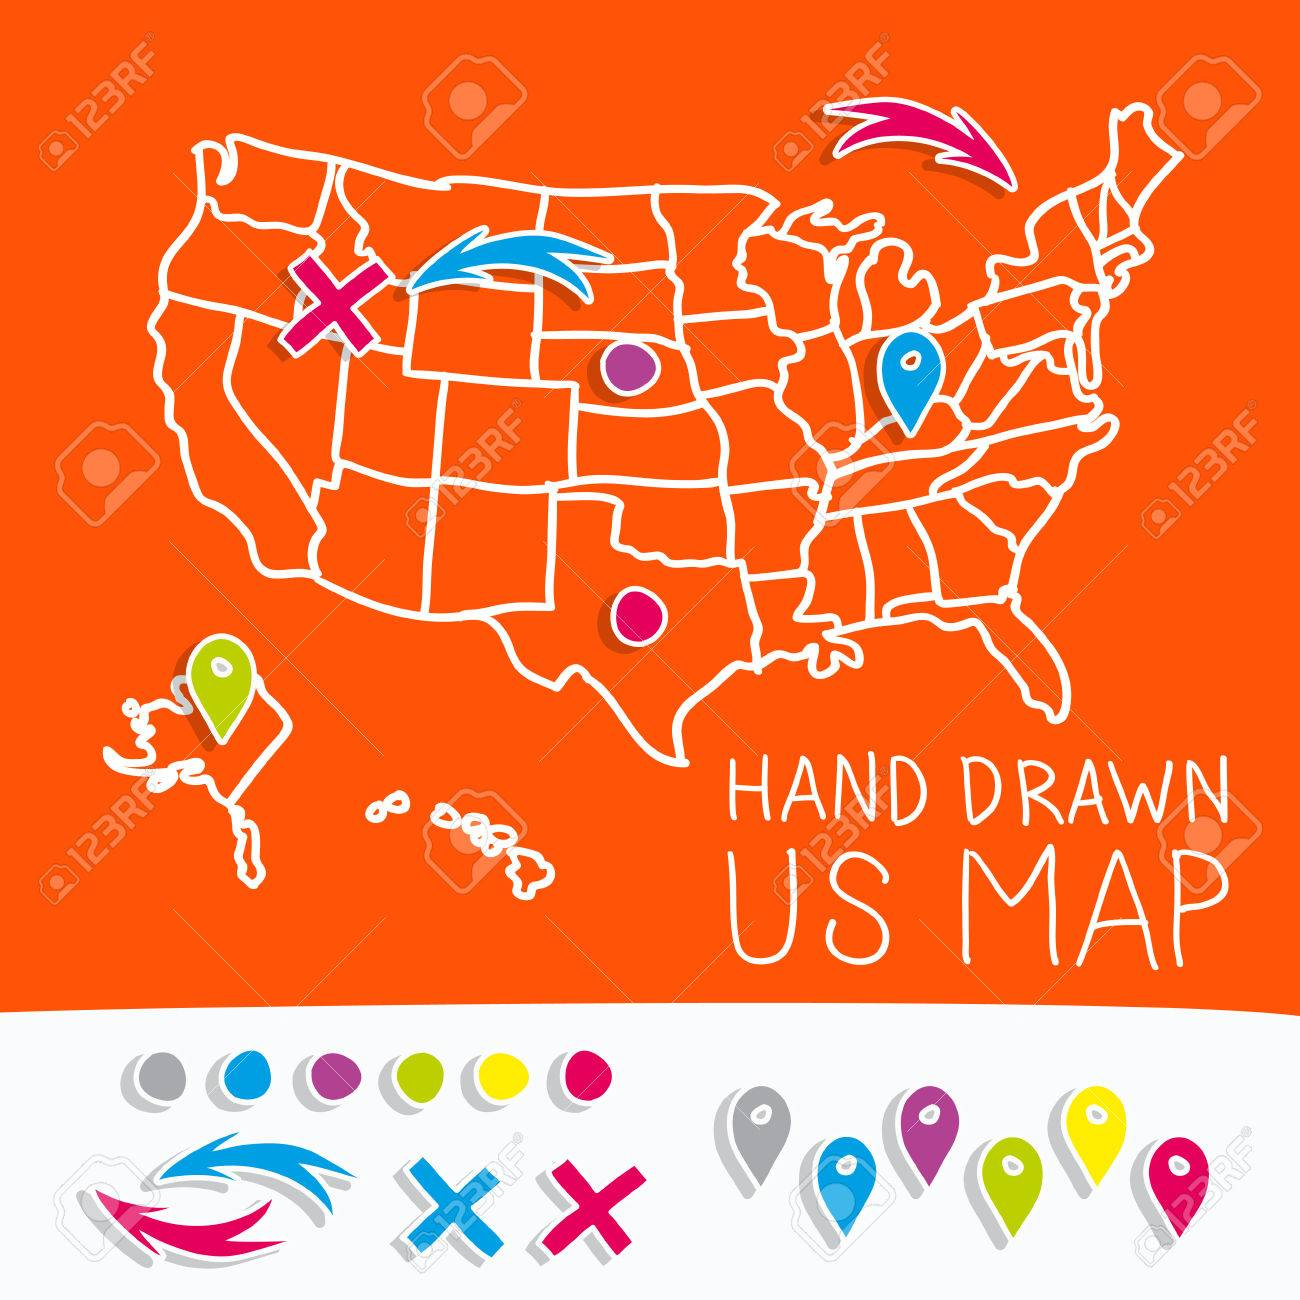 Hand Drawn Us Map.Hand Drawn Us Map Whith Map Pins Vector Illustration Royalty Free